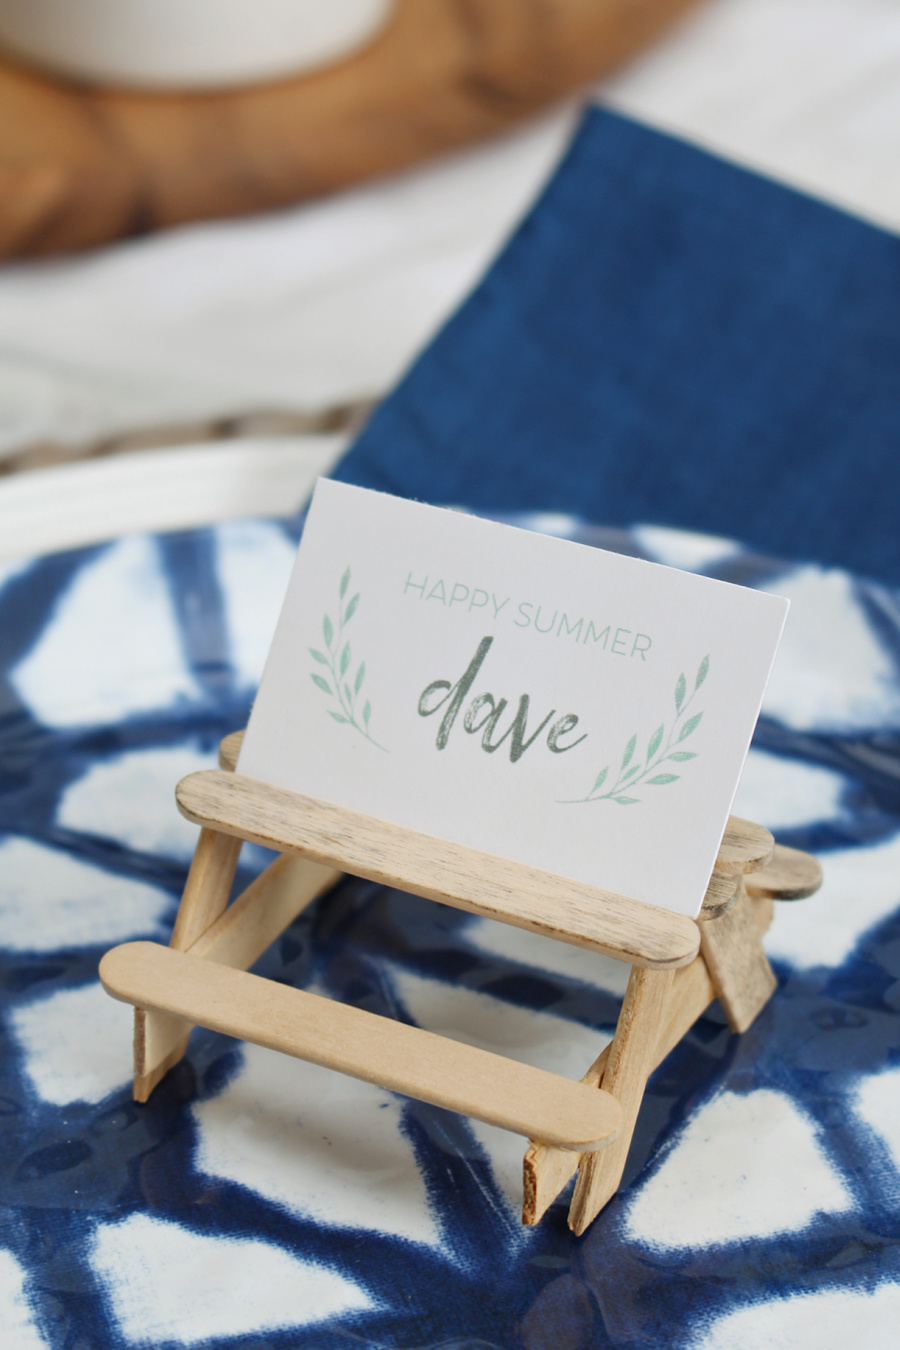 Cute popsicle stick picnic tables used for a place card holder.